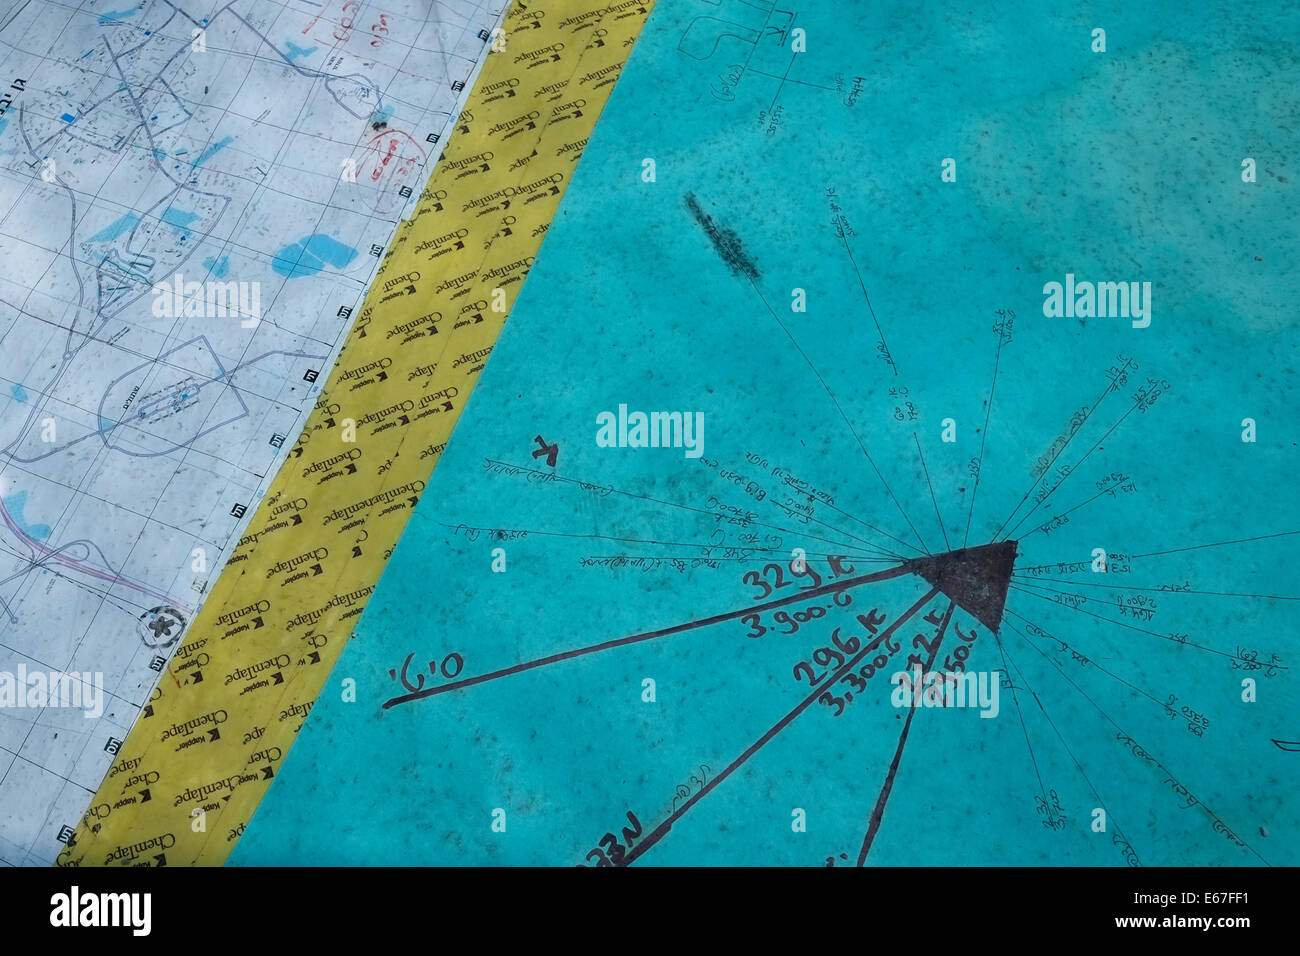 A military vector chart with map at the Israeli military observation post near the city of Ashdod Israel - Stock Image